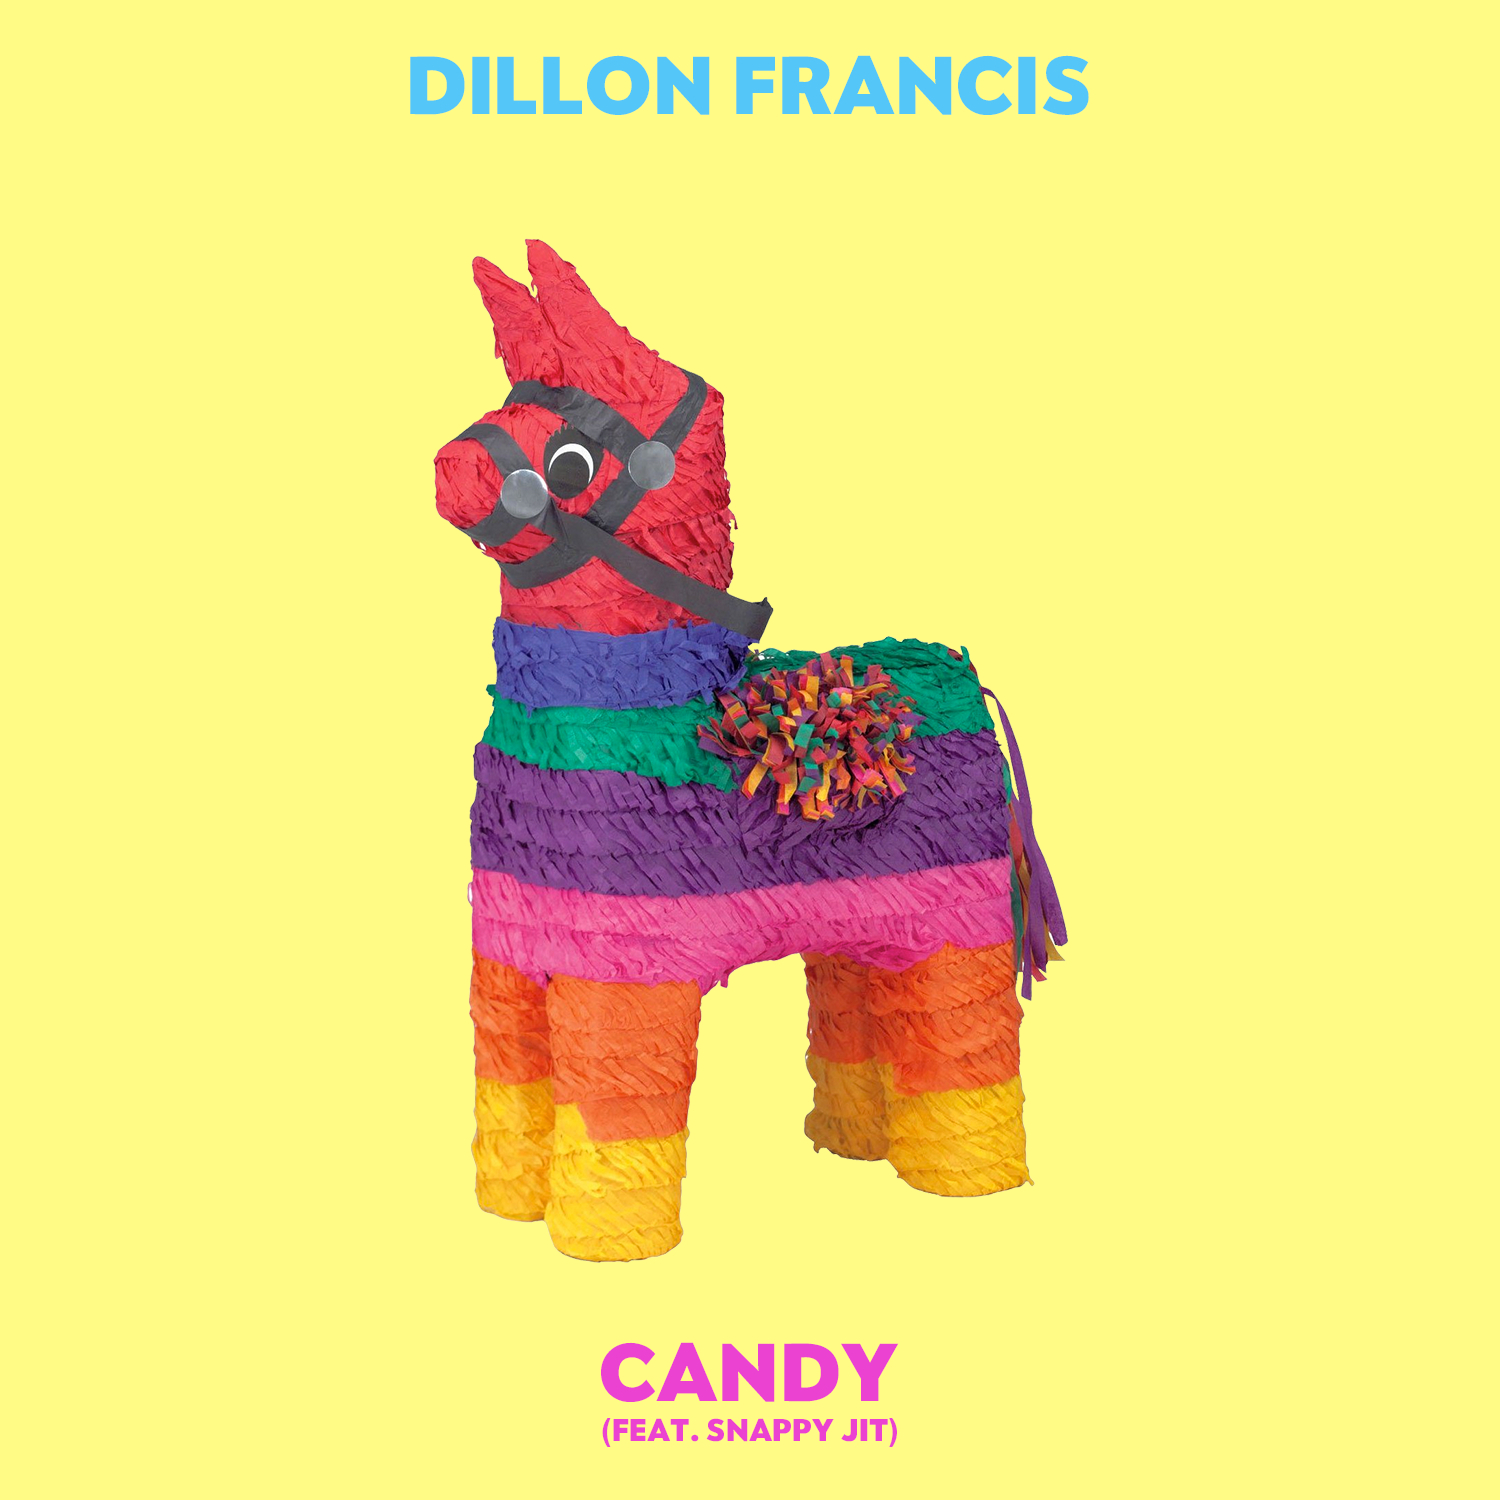 Dillon Francis - Candy (feat. Snappy Jit) - Single Cover